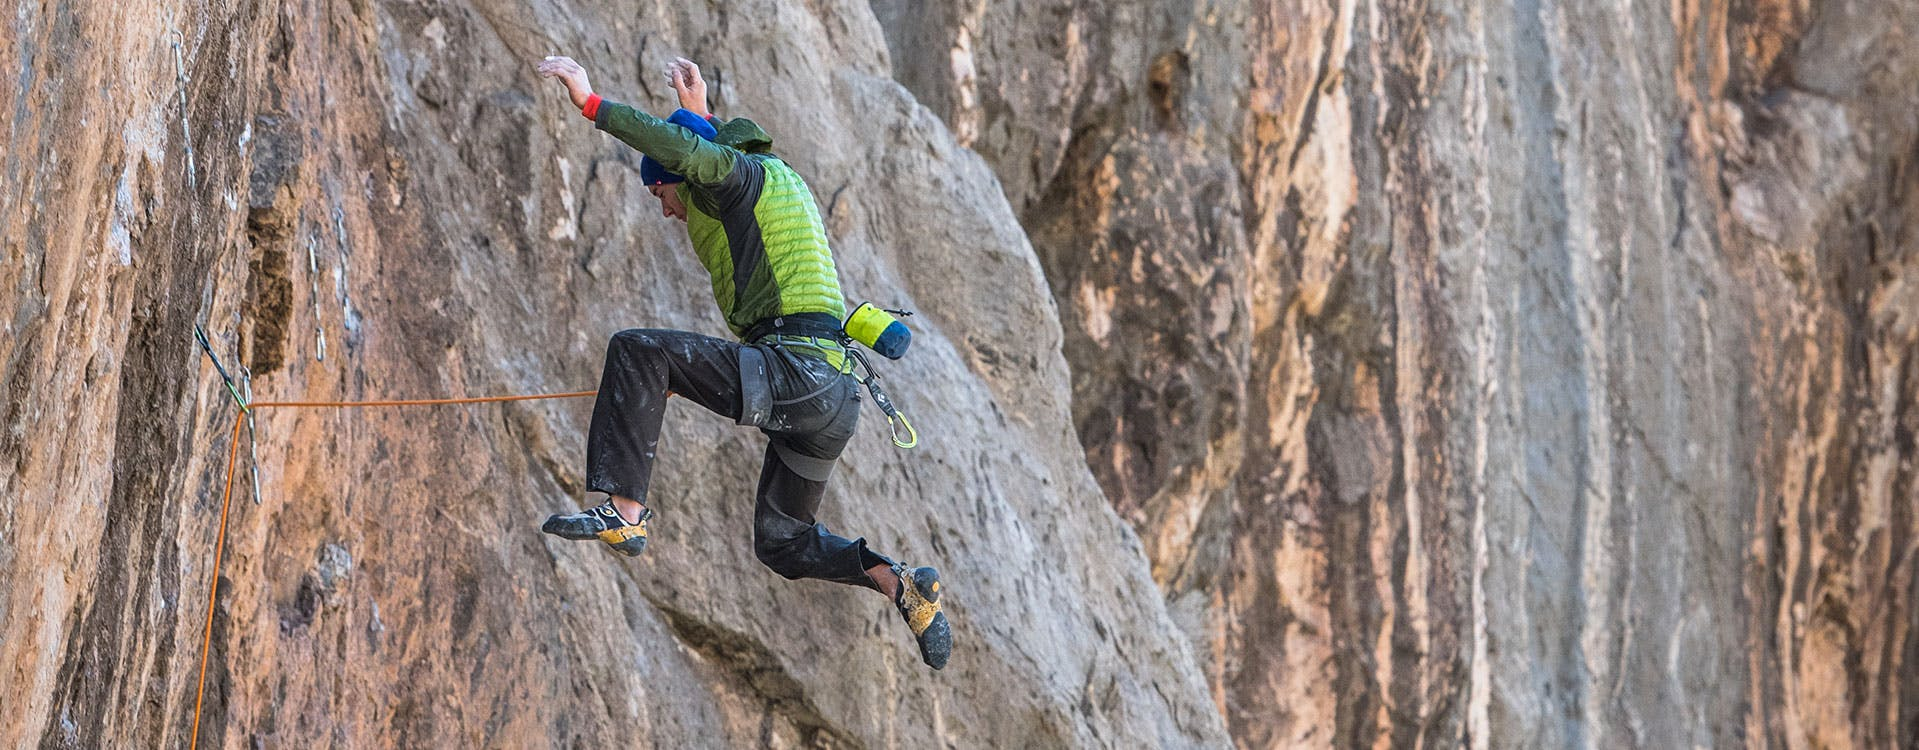 climber falling off a route